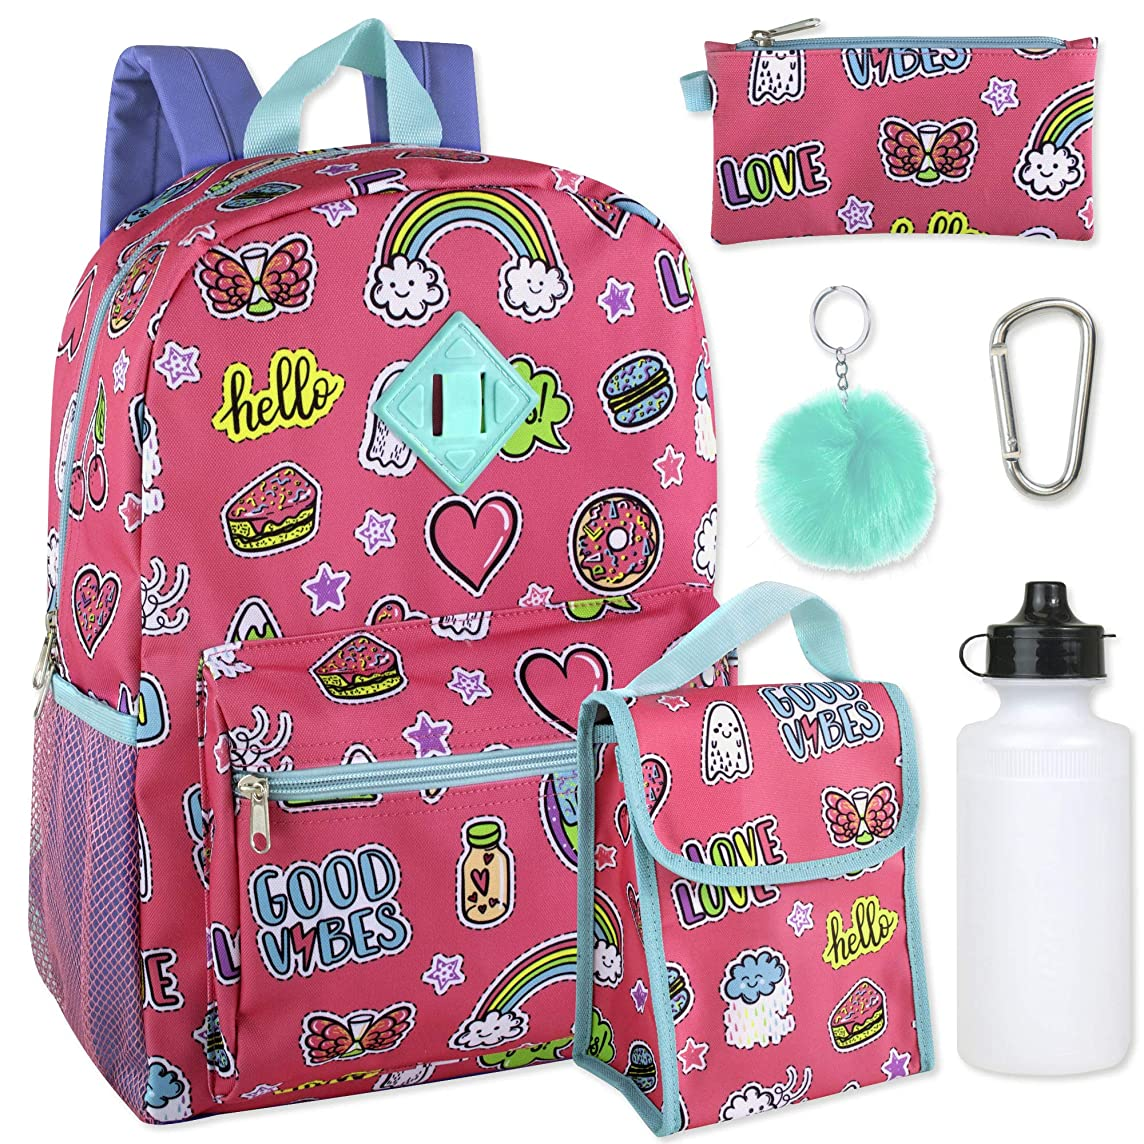 Girl's 6 in 1 Backpack Set Including A Backpack, Lunch Bag, Pencil Case,Water Bottle, Pom Pom Keychain, And Clip (Pink)